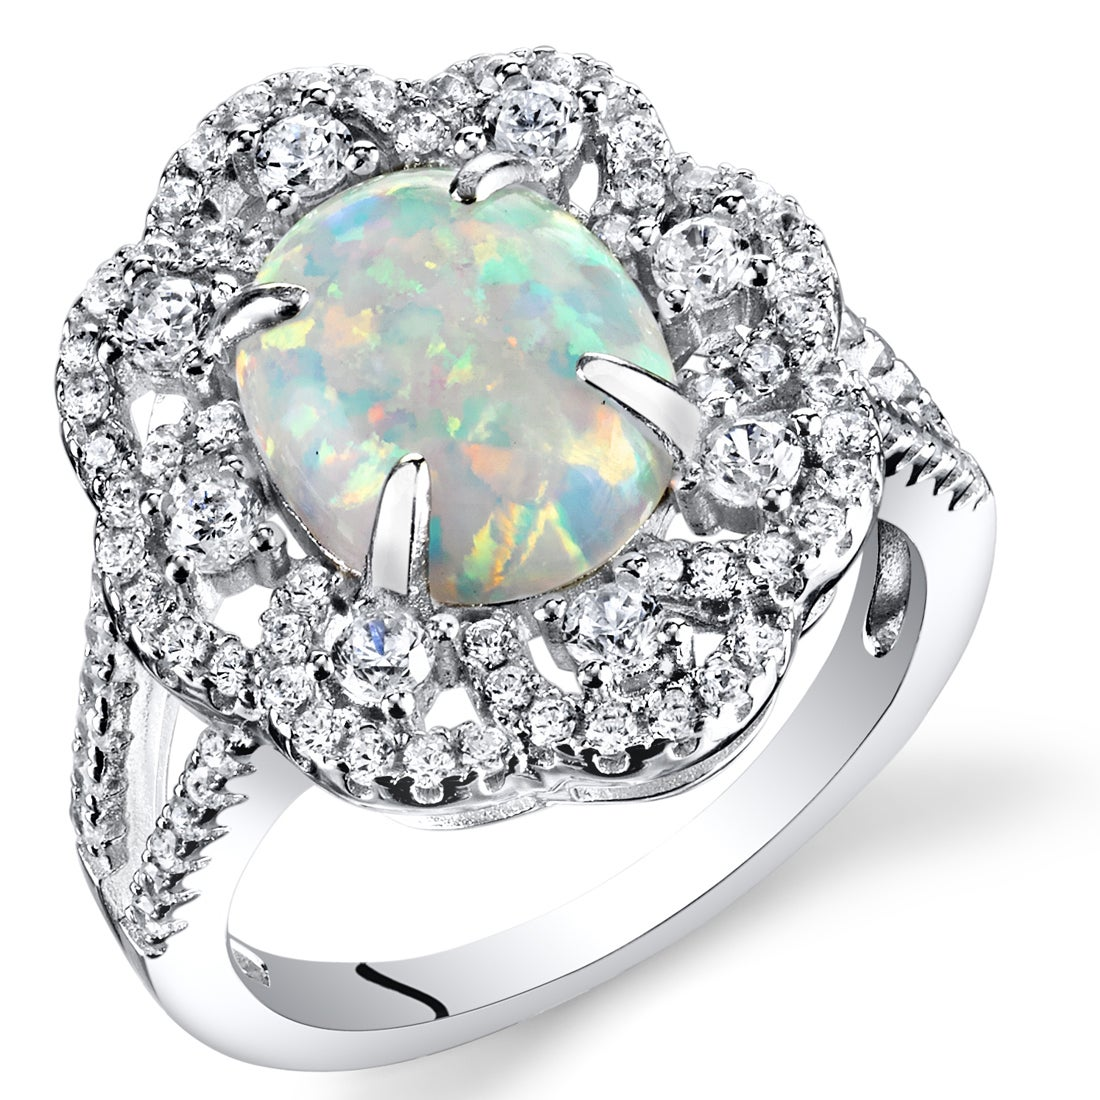 Created Opal Halo Ring Sterling Silver 1.25 Carats Sizes 5 to 9